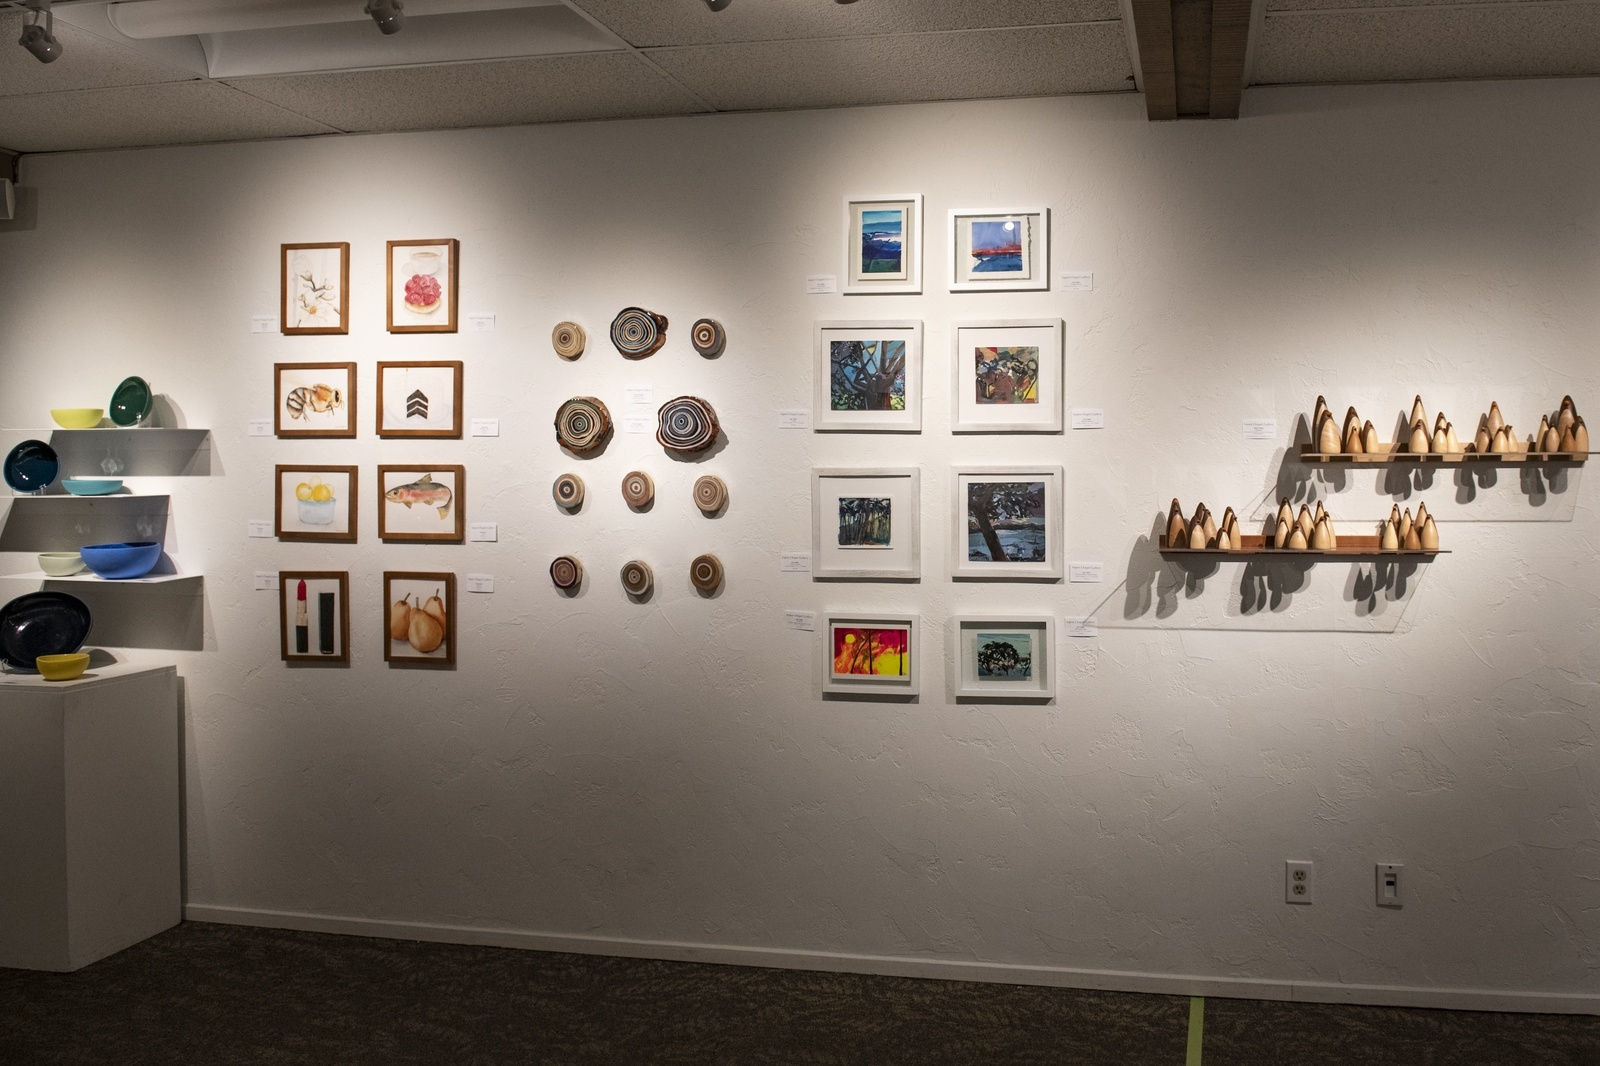 Small Wonders show and sale at the Aspen Chapel Gallery on Tuesday, Nov. 17, 2020. (Kelsey Brunner/The Aspen Times)